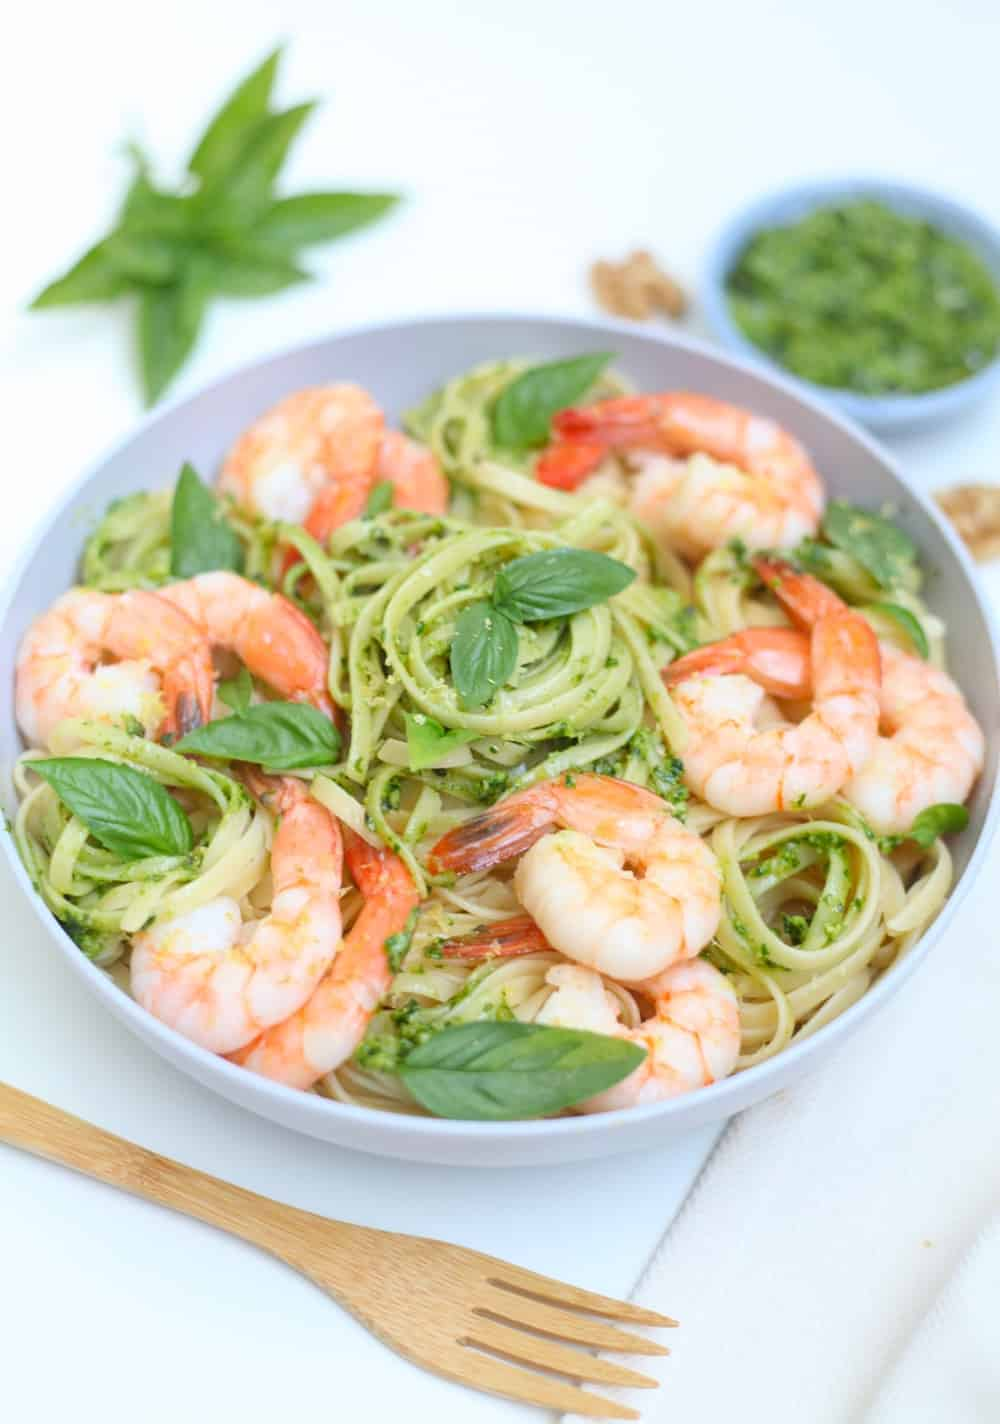 Gray bowl filled with linguine and shrimp tossed in arugula walnut pesto